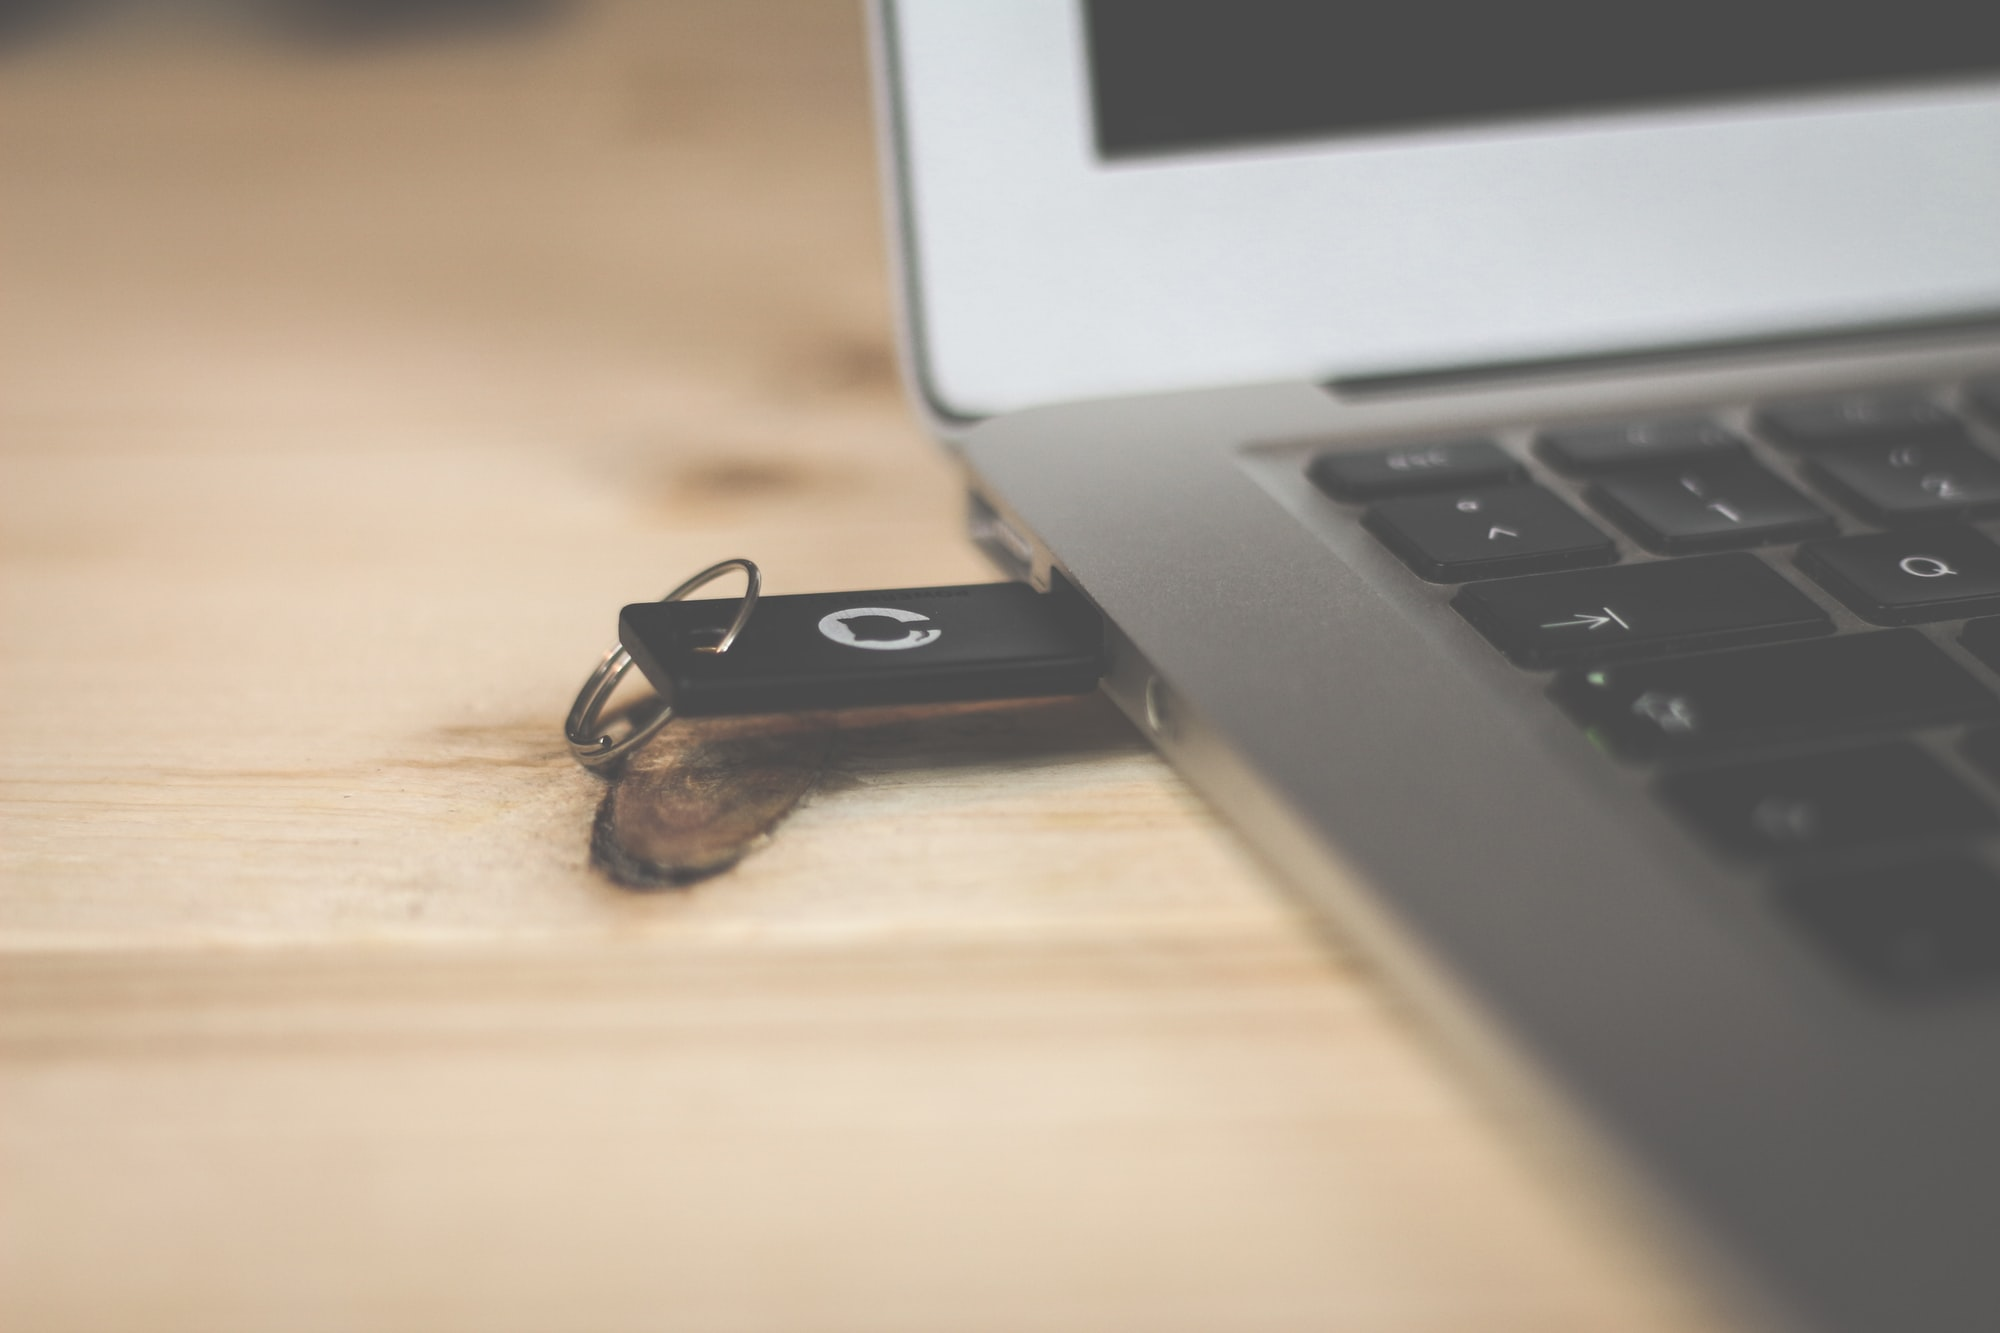 Use your USB as security key in Linux